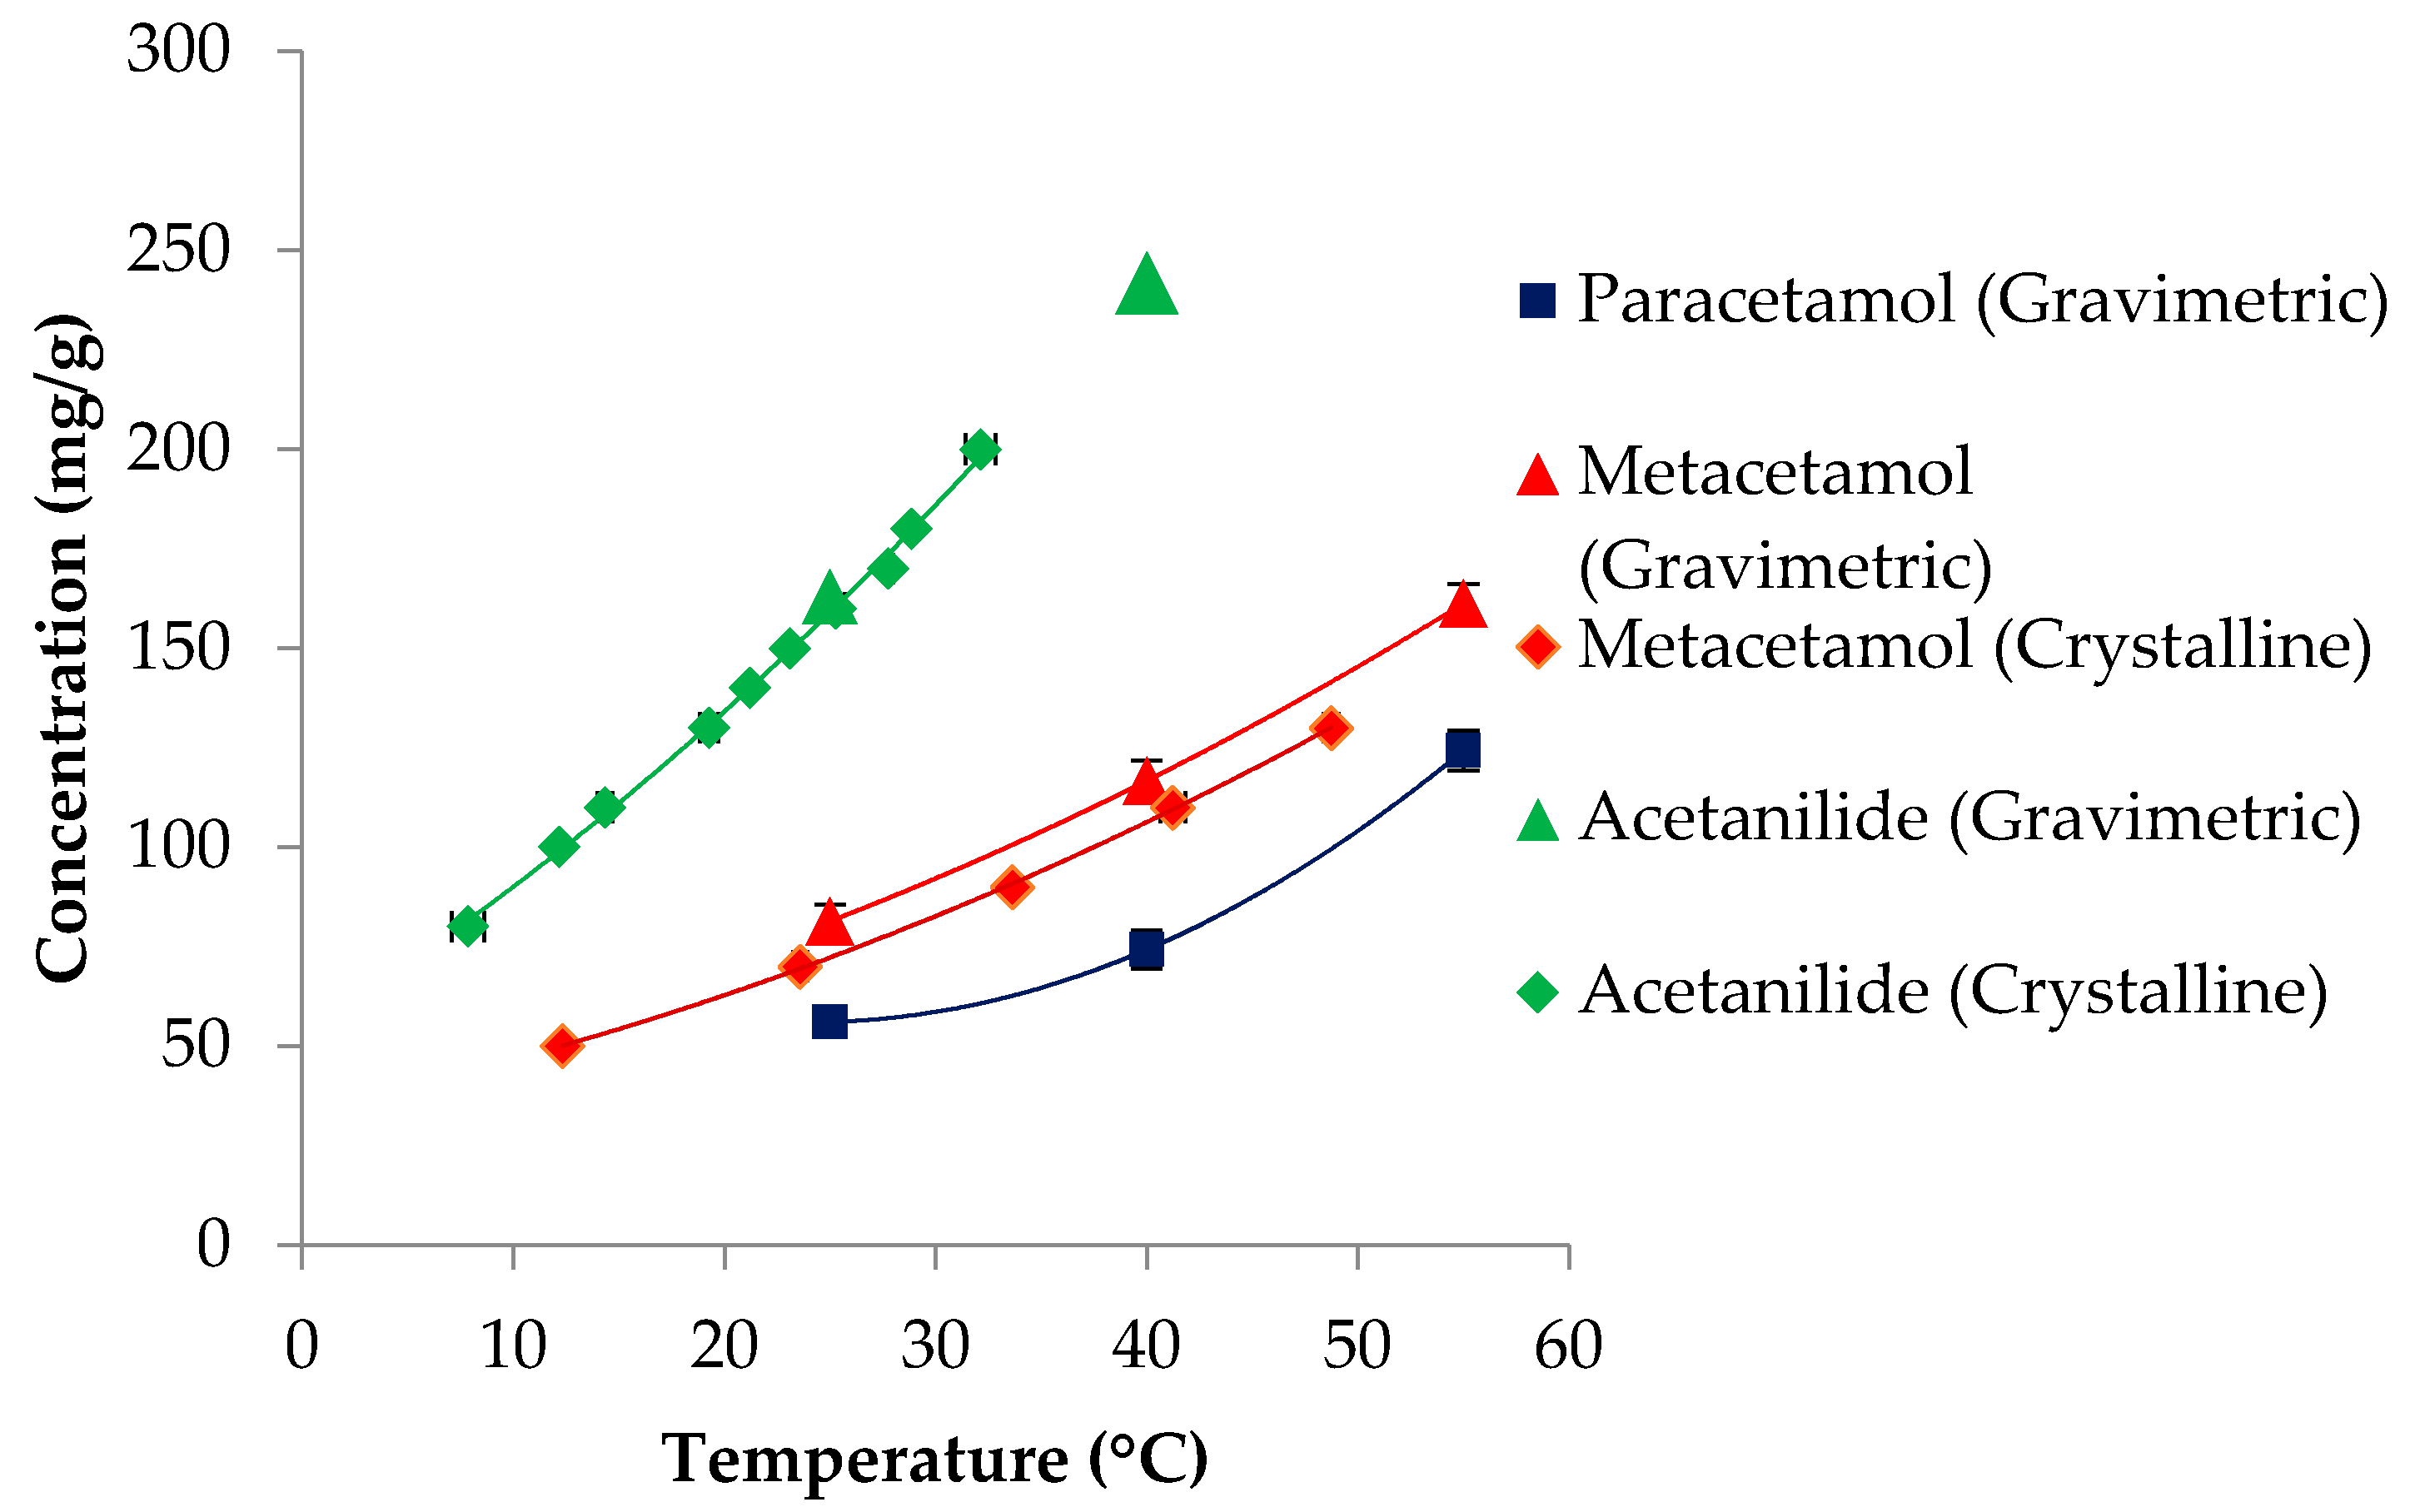 to observe the effect of temperature